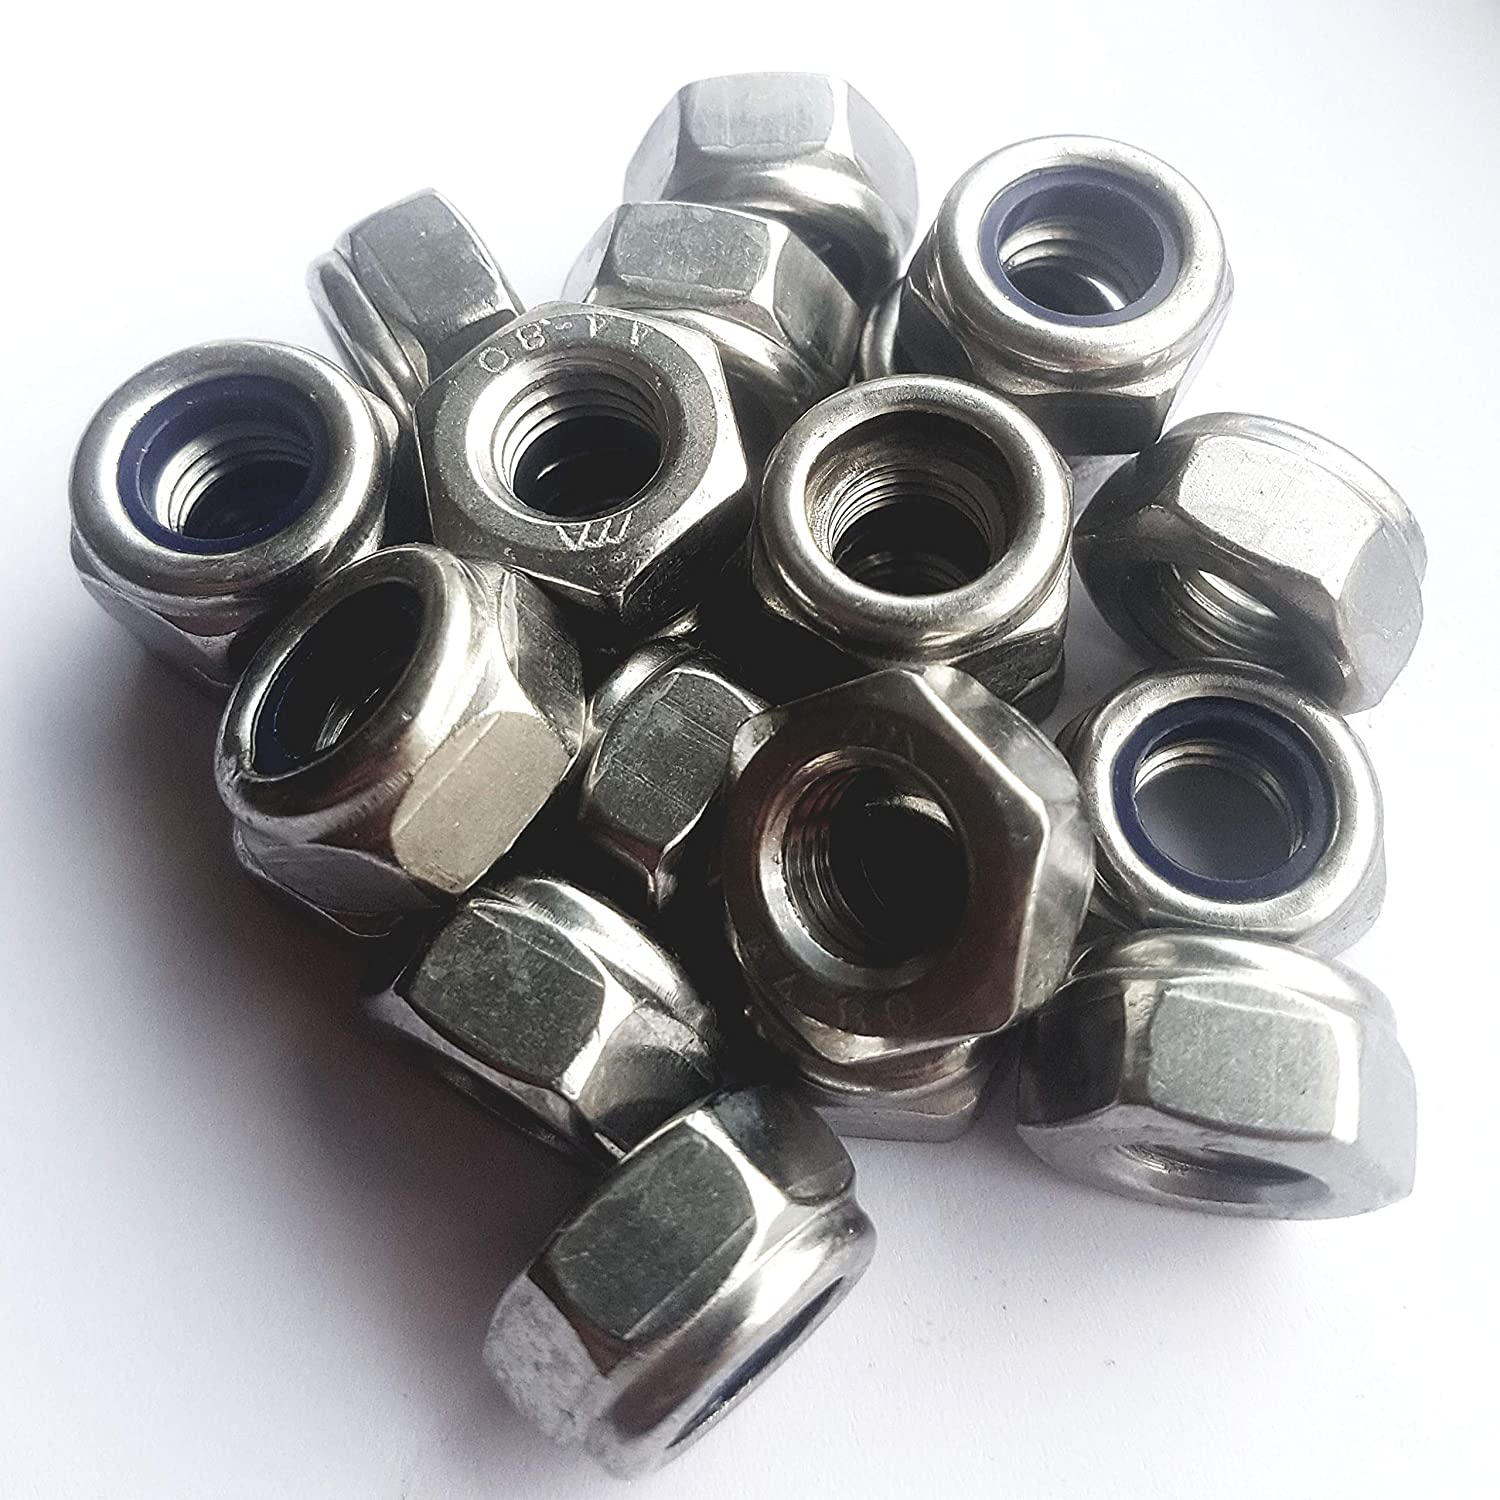 Nyloc Nylon Nut M3//4//5//6//8//10//12 Insert Locking A4 Marine Grade Stainless SS316 25 Pack x M3 Nylock A4 Nuts